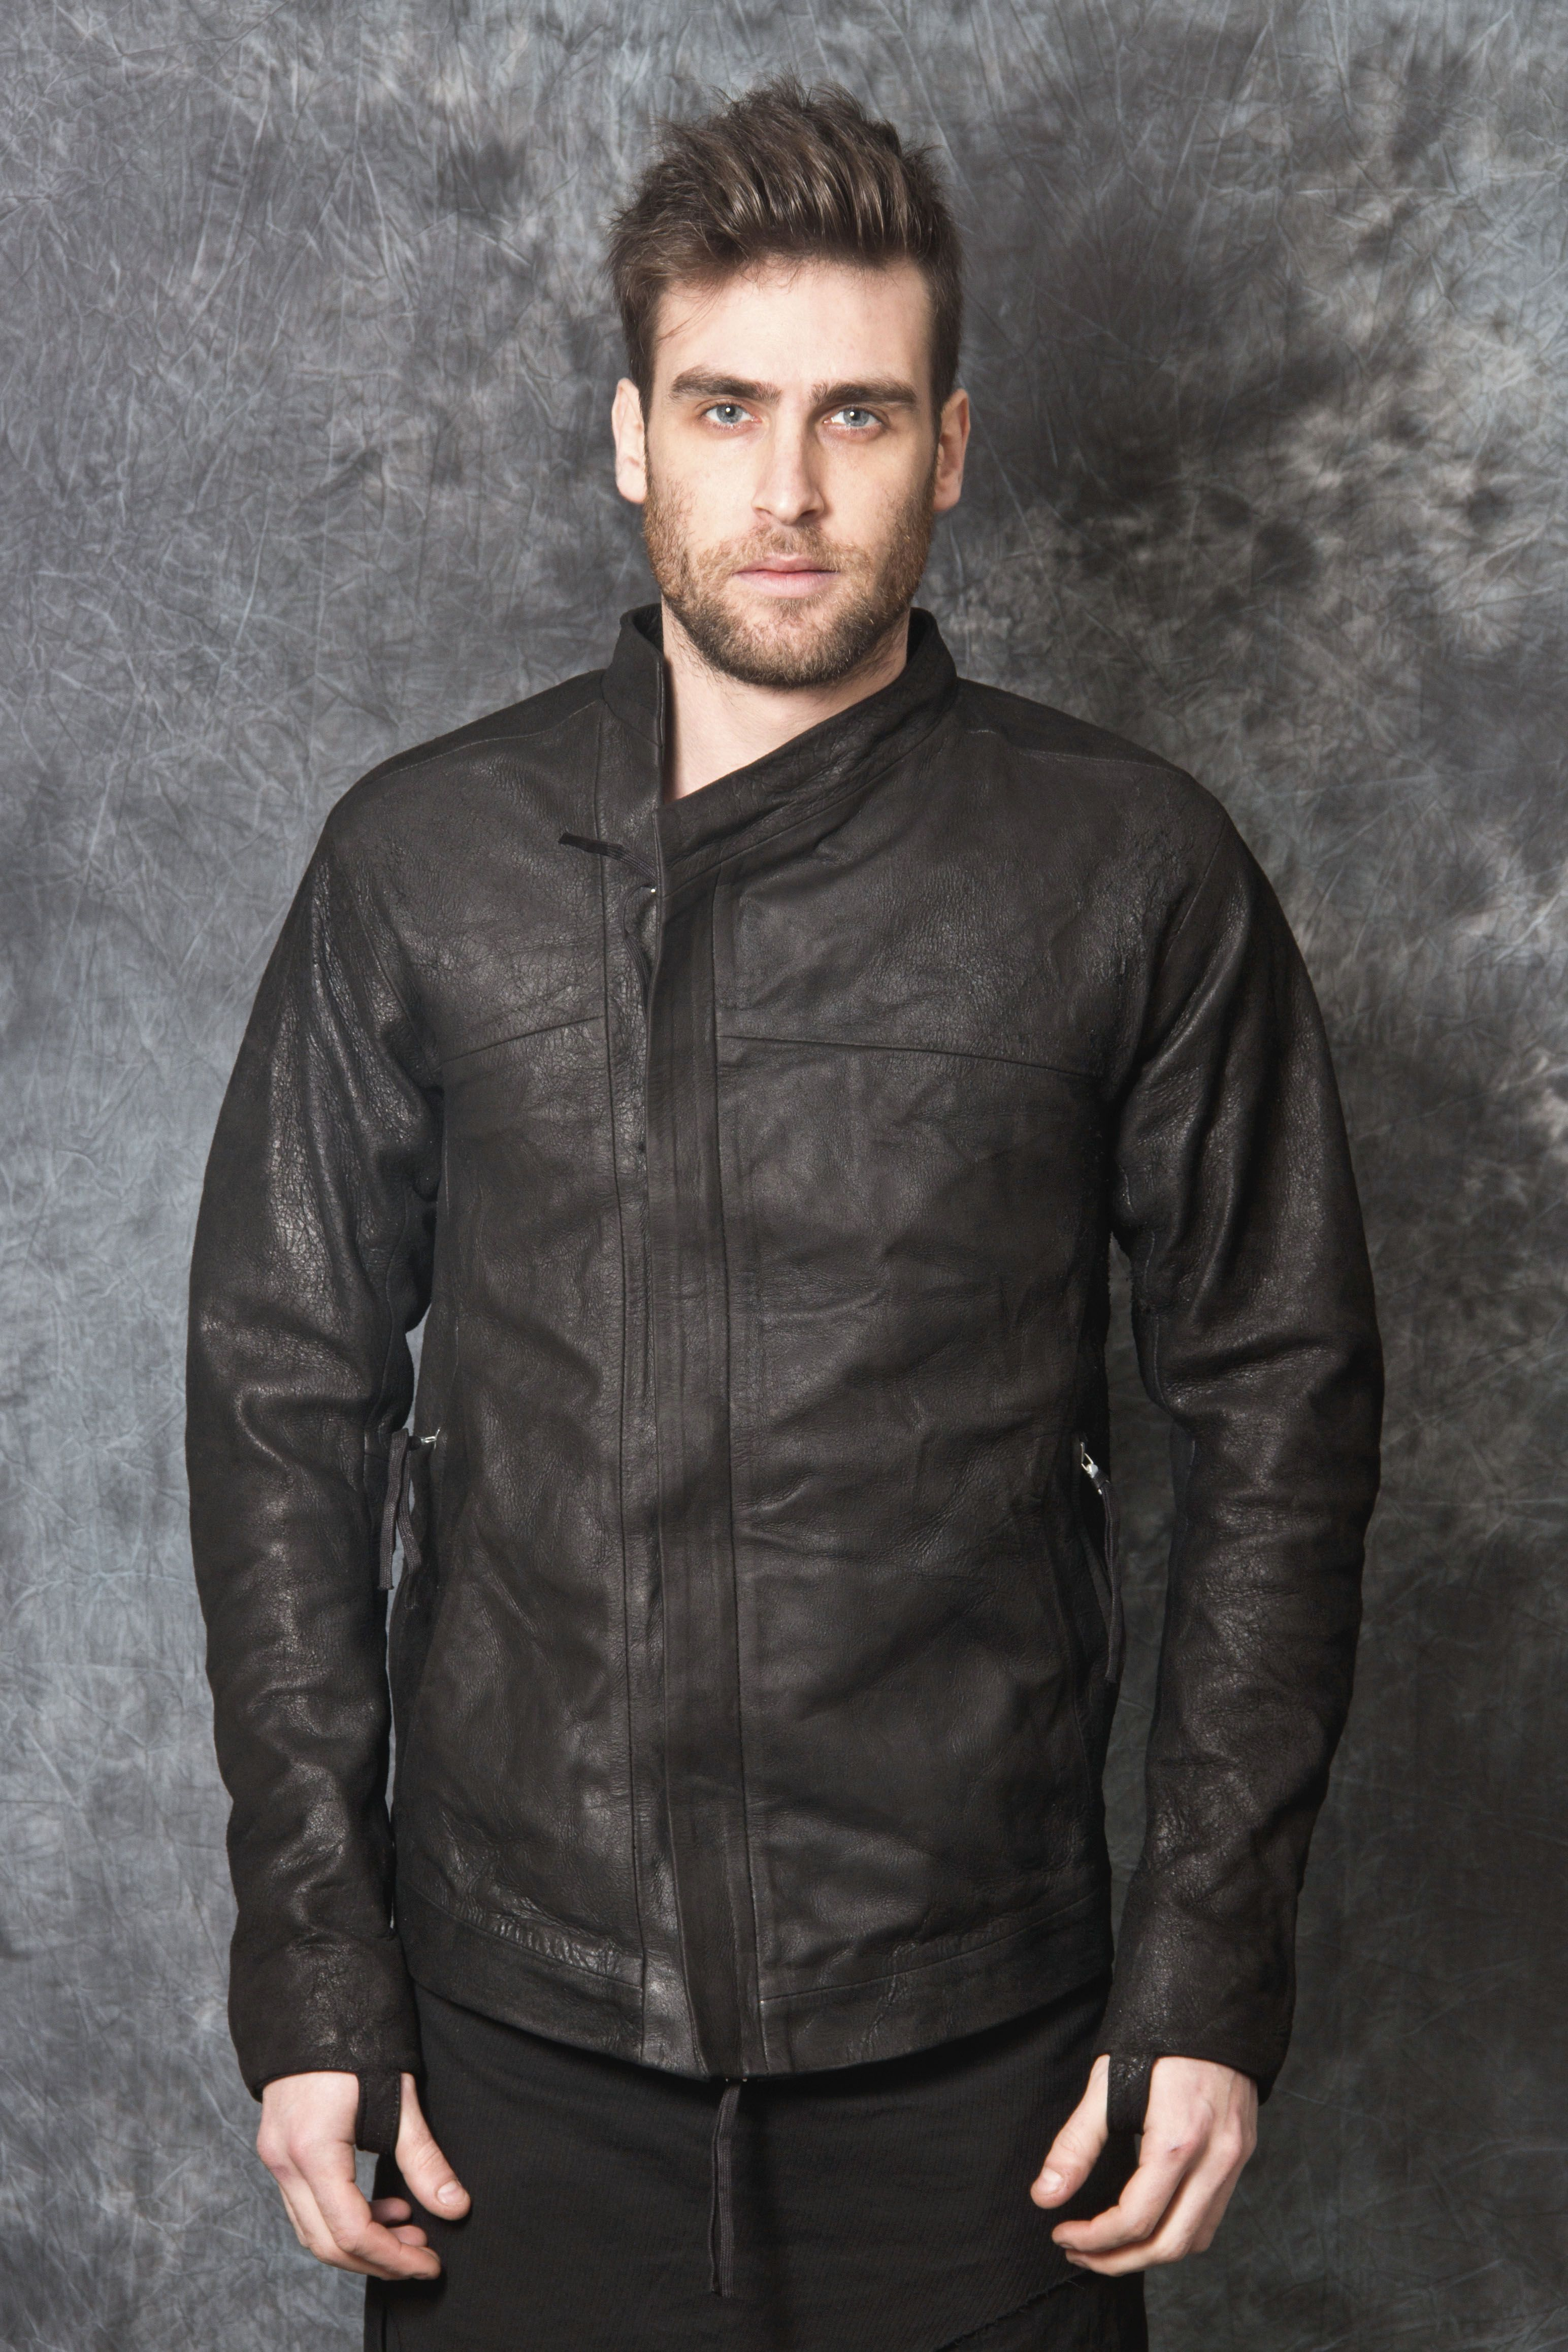 Bbs zip up leather jacket oiled and washed